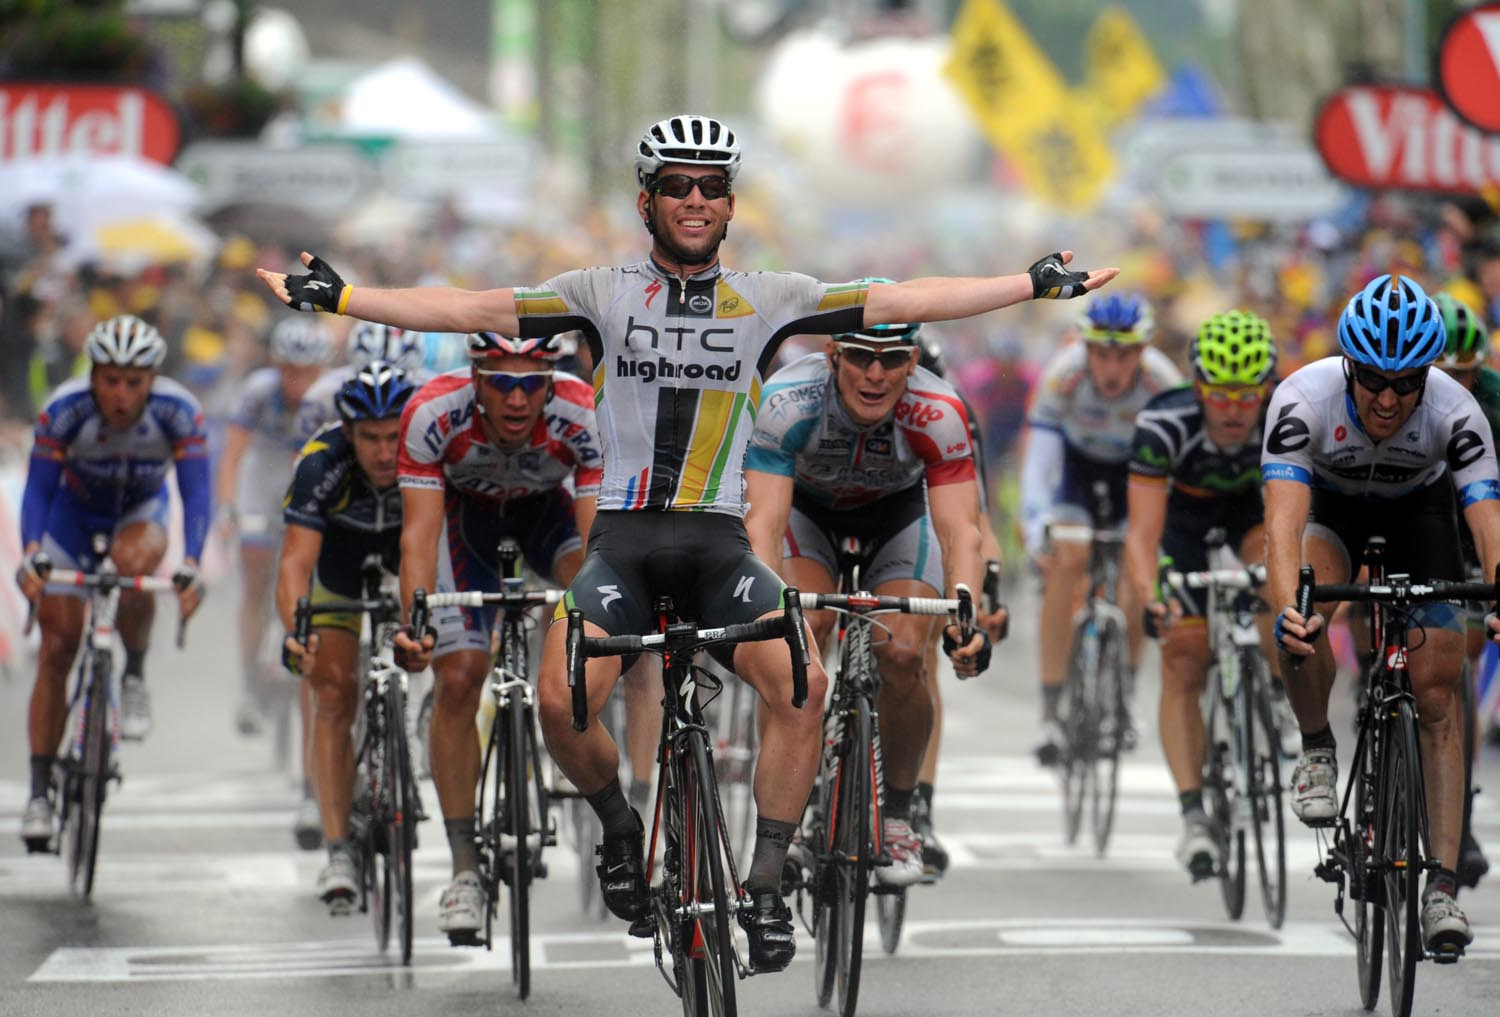 Mark Cavendish wins, Tour de France 2011, stage 11